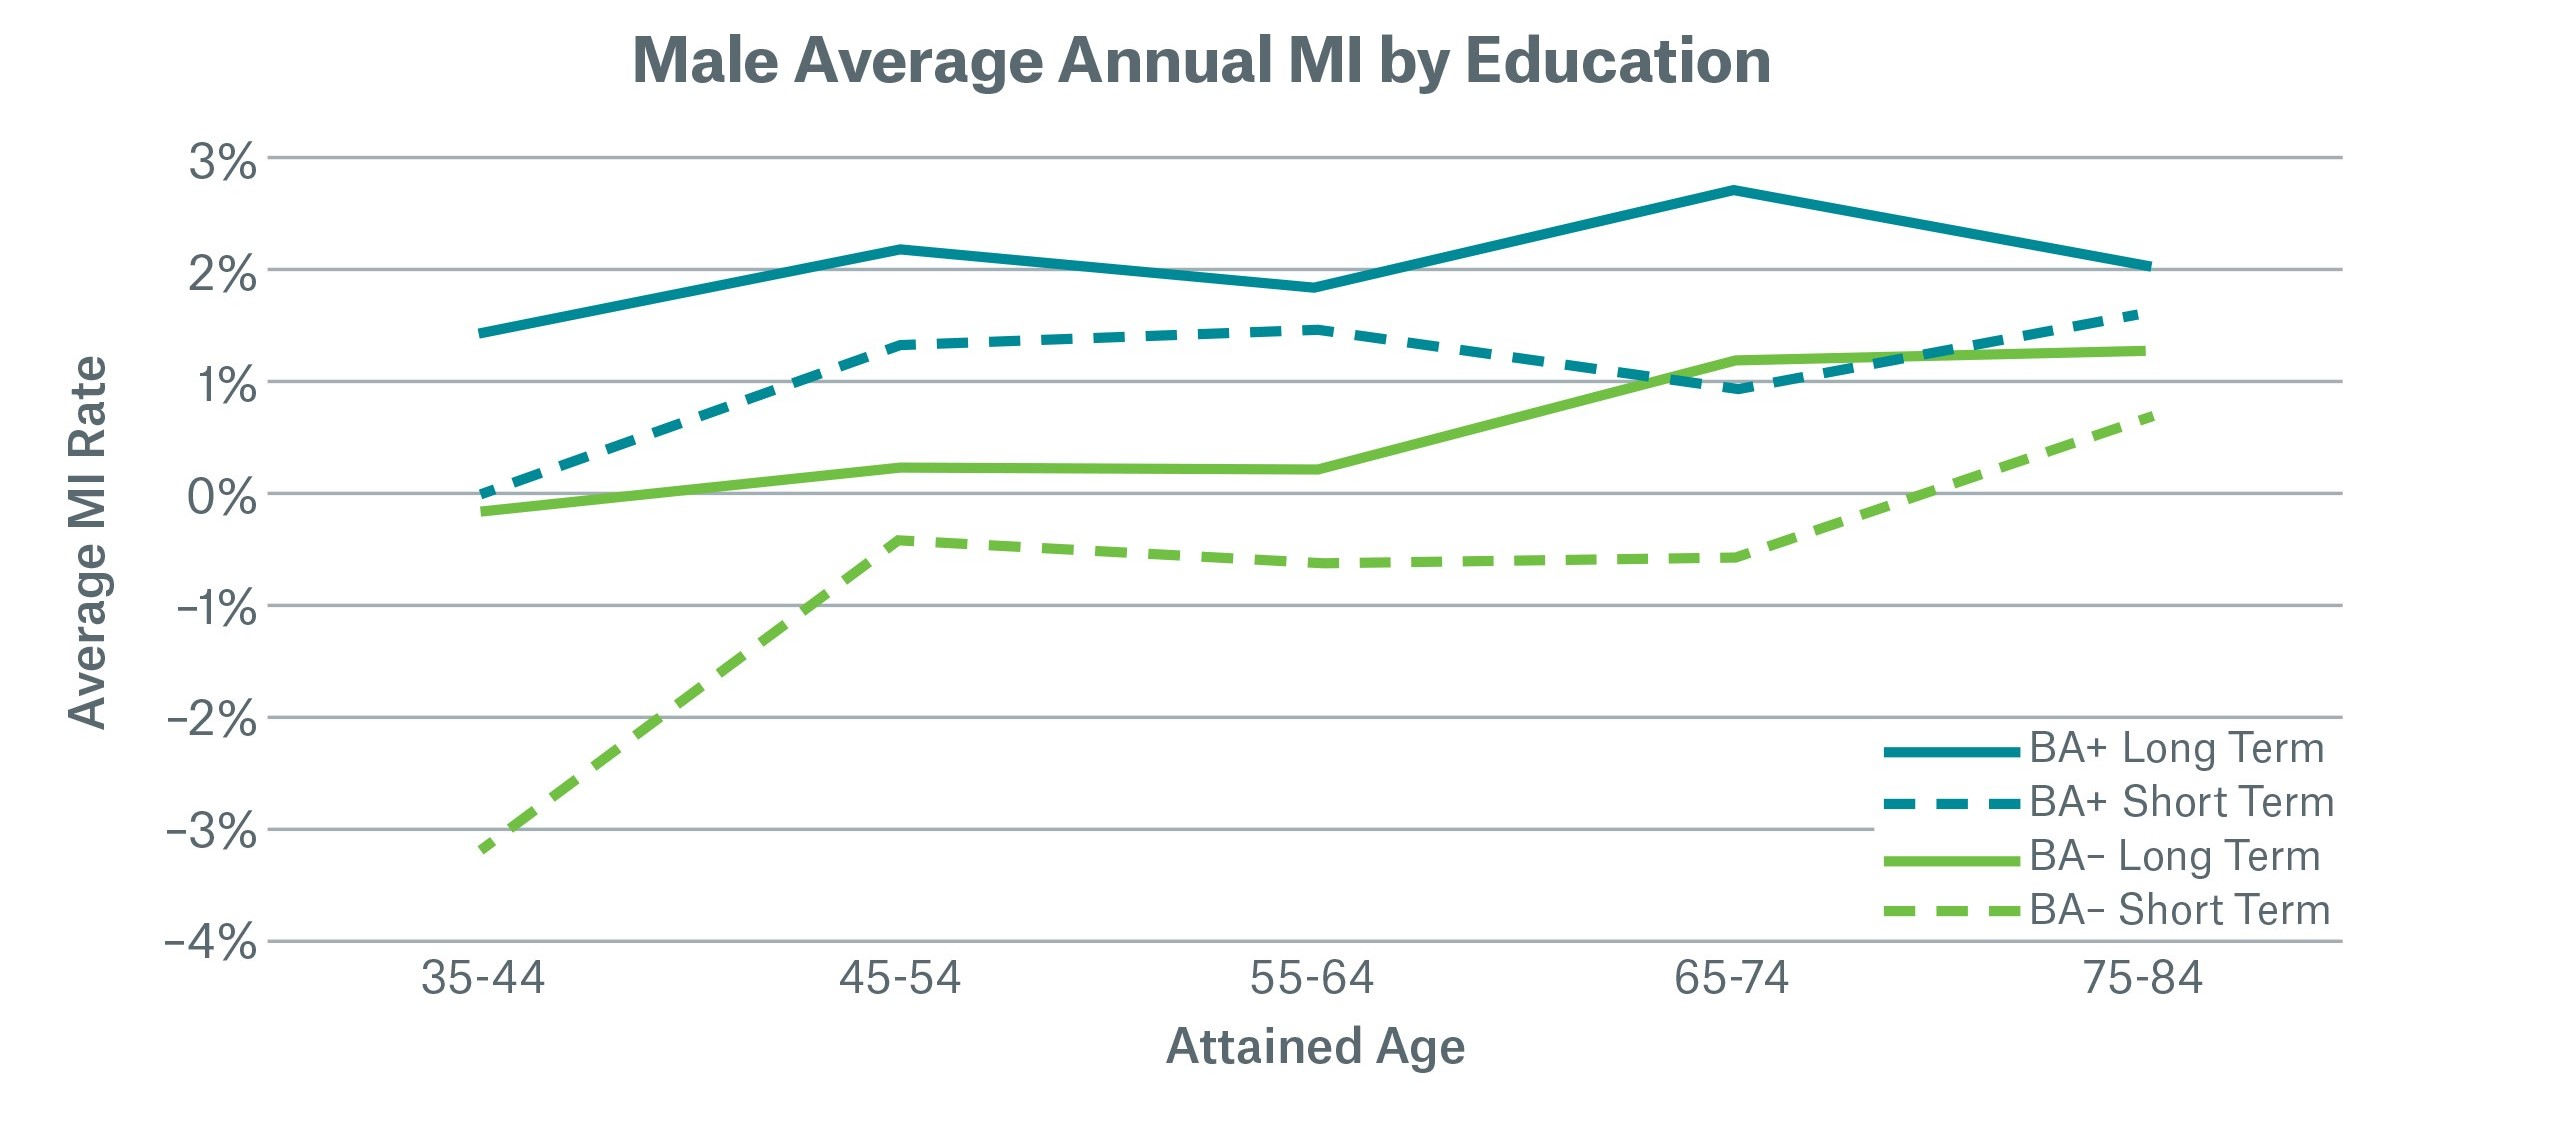 Male Average Annual MI by Education